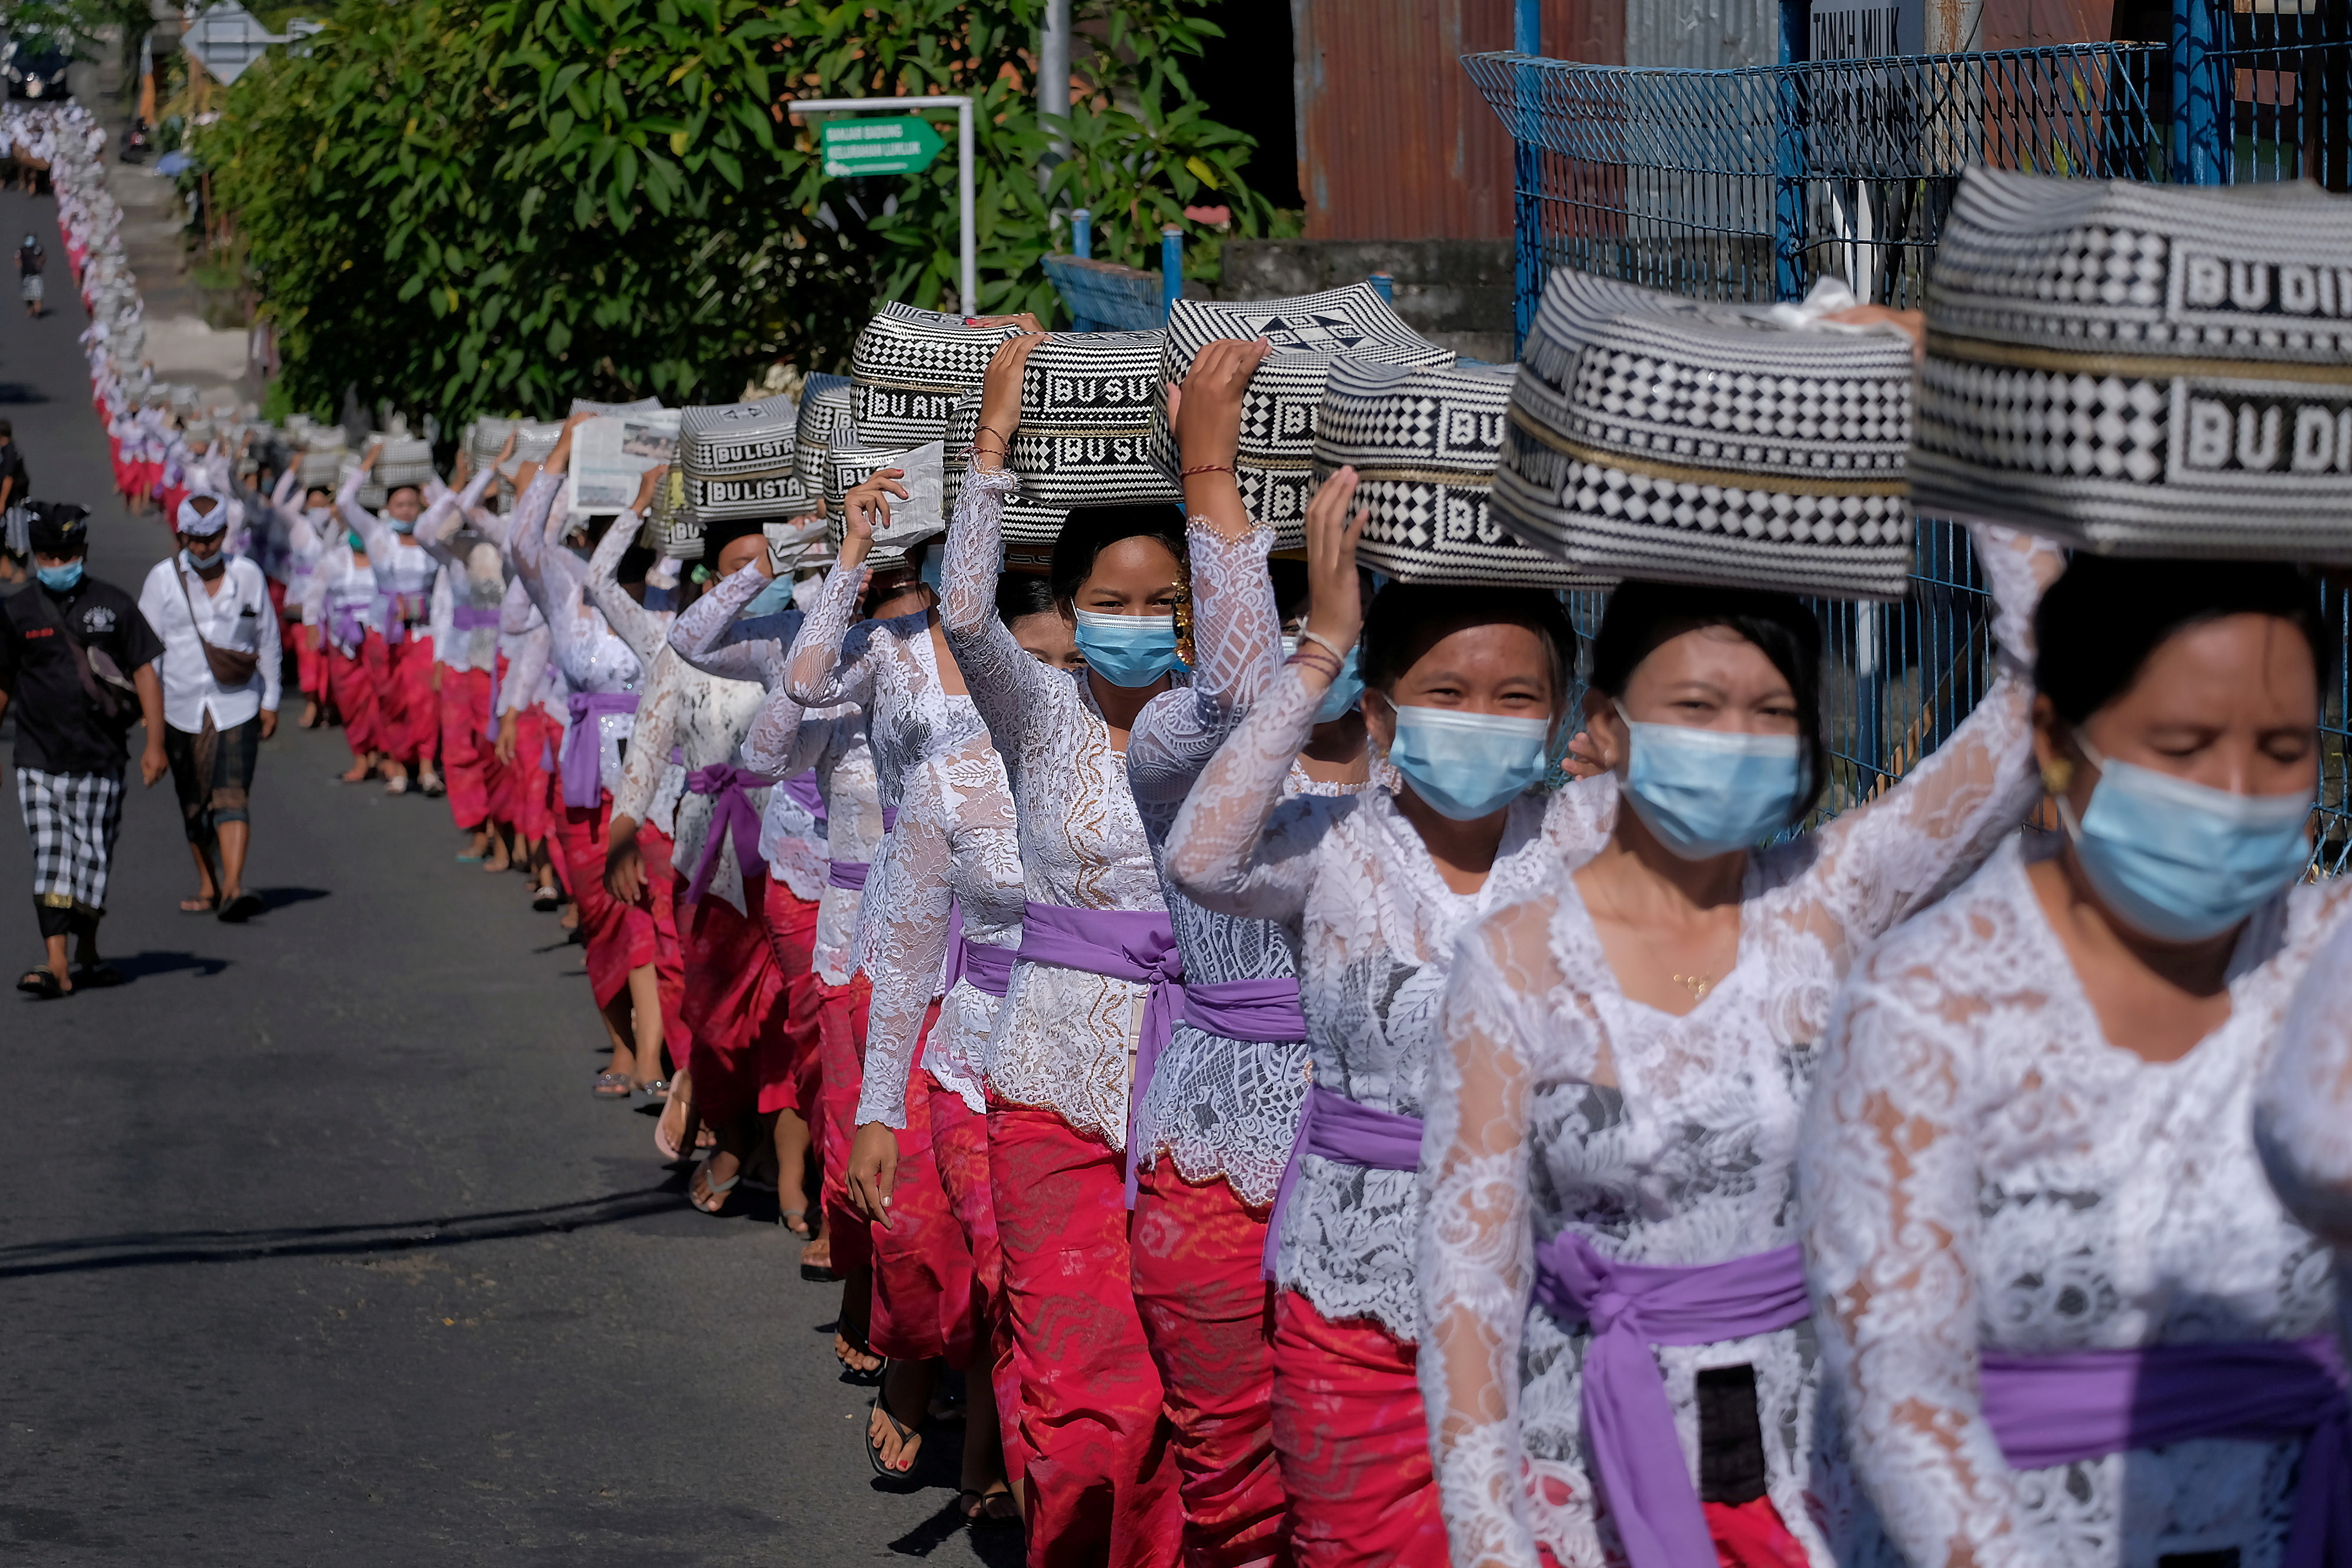 Balinese Hindus wearing protective masks carry offerings as they celebrate the Galungan religious holiday at Lukluk village, amid the coronavirus disease (COVID-19) pandemic, in Badung, Bali, Indonesia April 14, 2021. Nyoman Hendra Wibowo/Antara Foto via REUTERS ATTENTION EDITORS - THIS IMAGE WAS PROVIDED BY THIRD PARTY. MANDATORY CREDIT. INDONESIA OUT.     TPX IMAGES OF THE DAY - RC2PVM9K2L4J